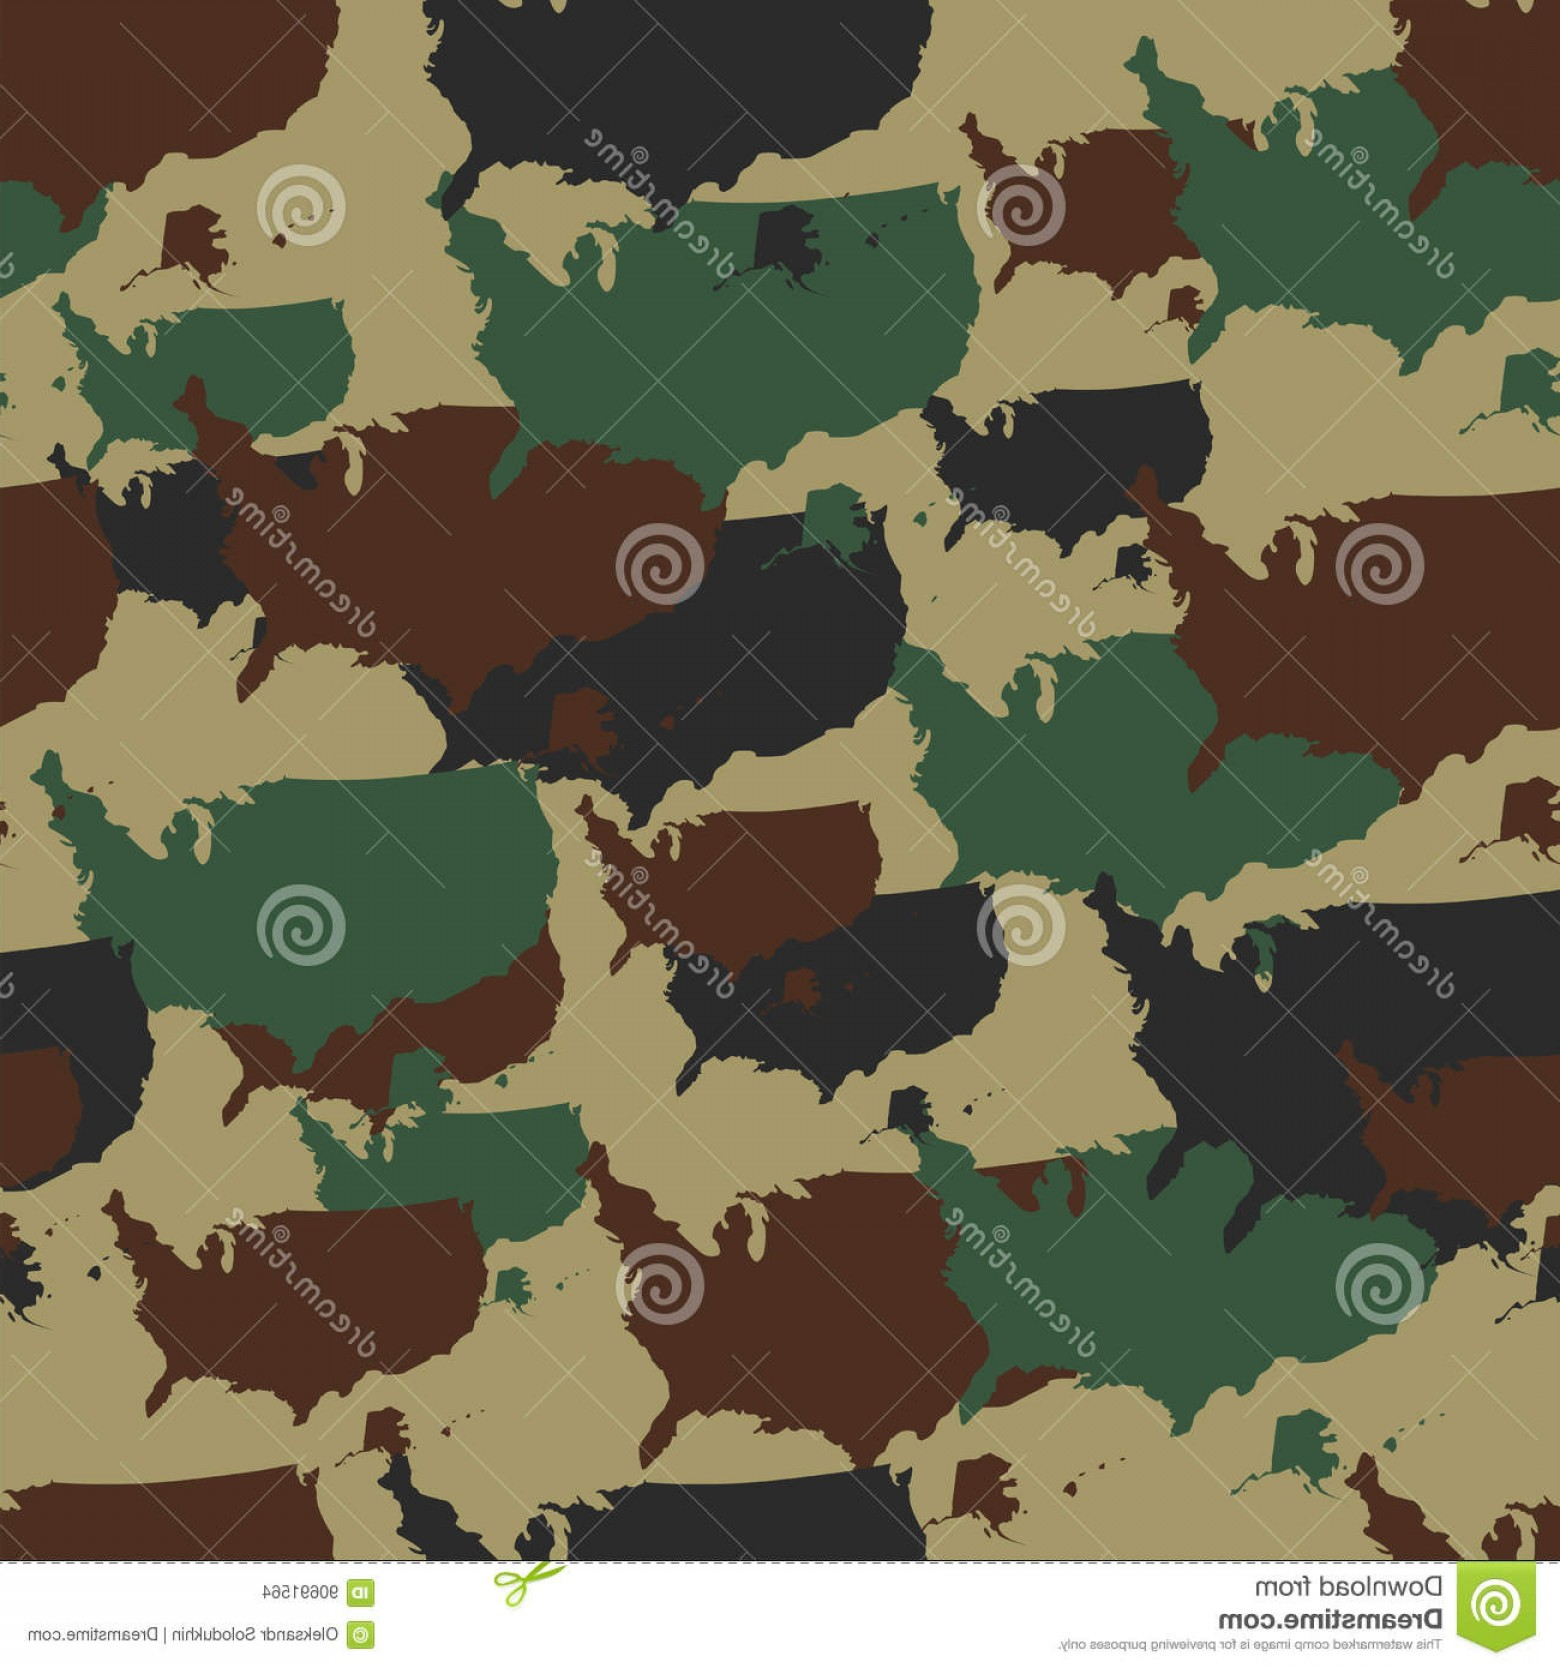 Army Camouflage Pattern Vector: Stock Illustration Military Camouflage Pattern Seamless Repeat Camo Different Colors Vector Military Print Usa Map Army Woodland Image